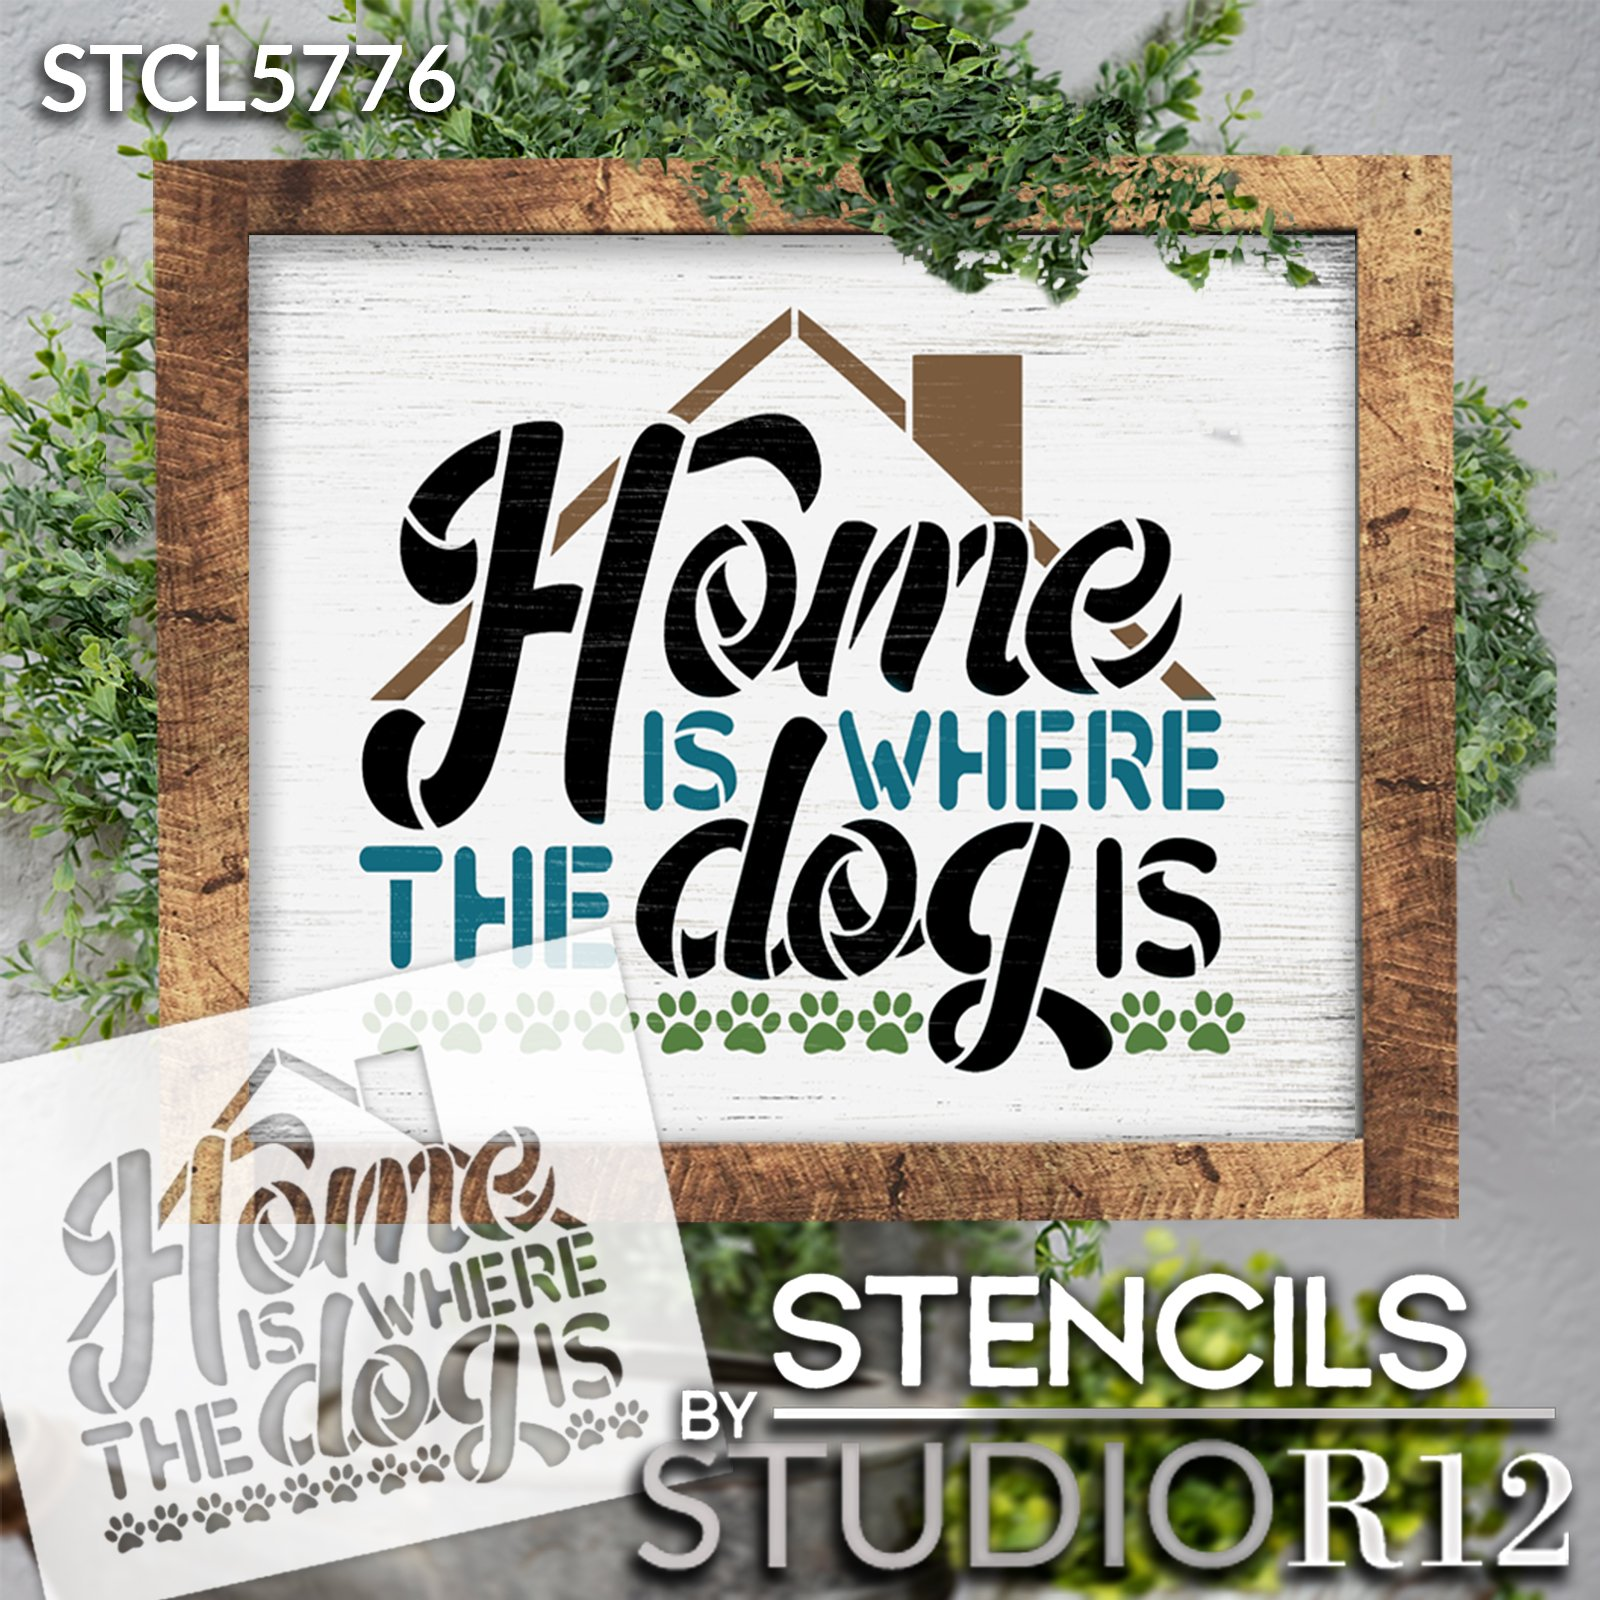 Home is Where The Dog is Stencil by StudioR12   Craft DIY Pet Pawprint House Home Decor   Paint Lover Wood Sign   Reusable Mylar Template   Select Size